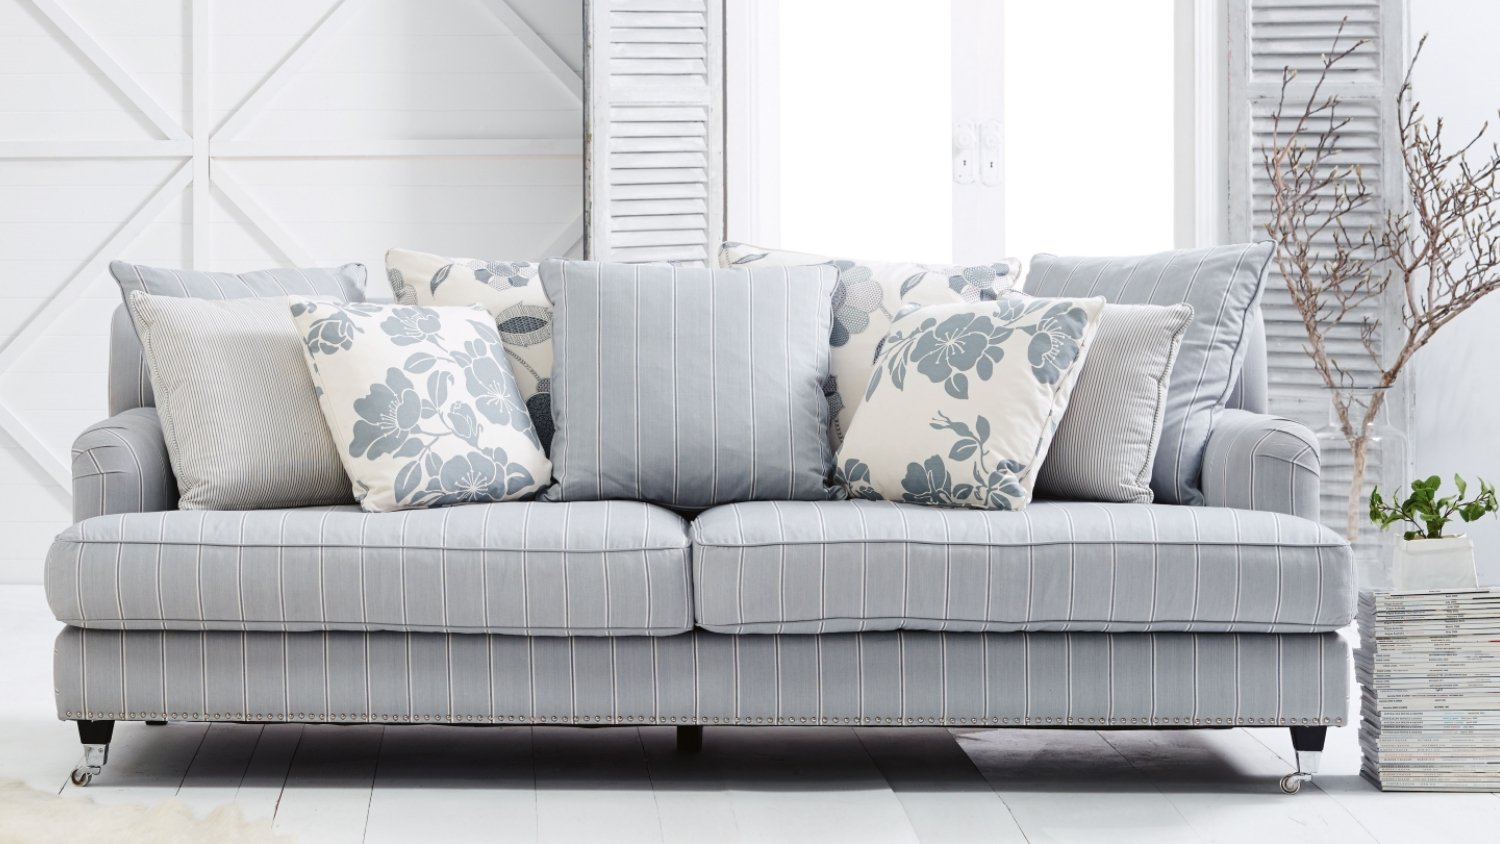 Hom Furniture Fabric Protection Domayne Sofas Australia Brokeasshome